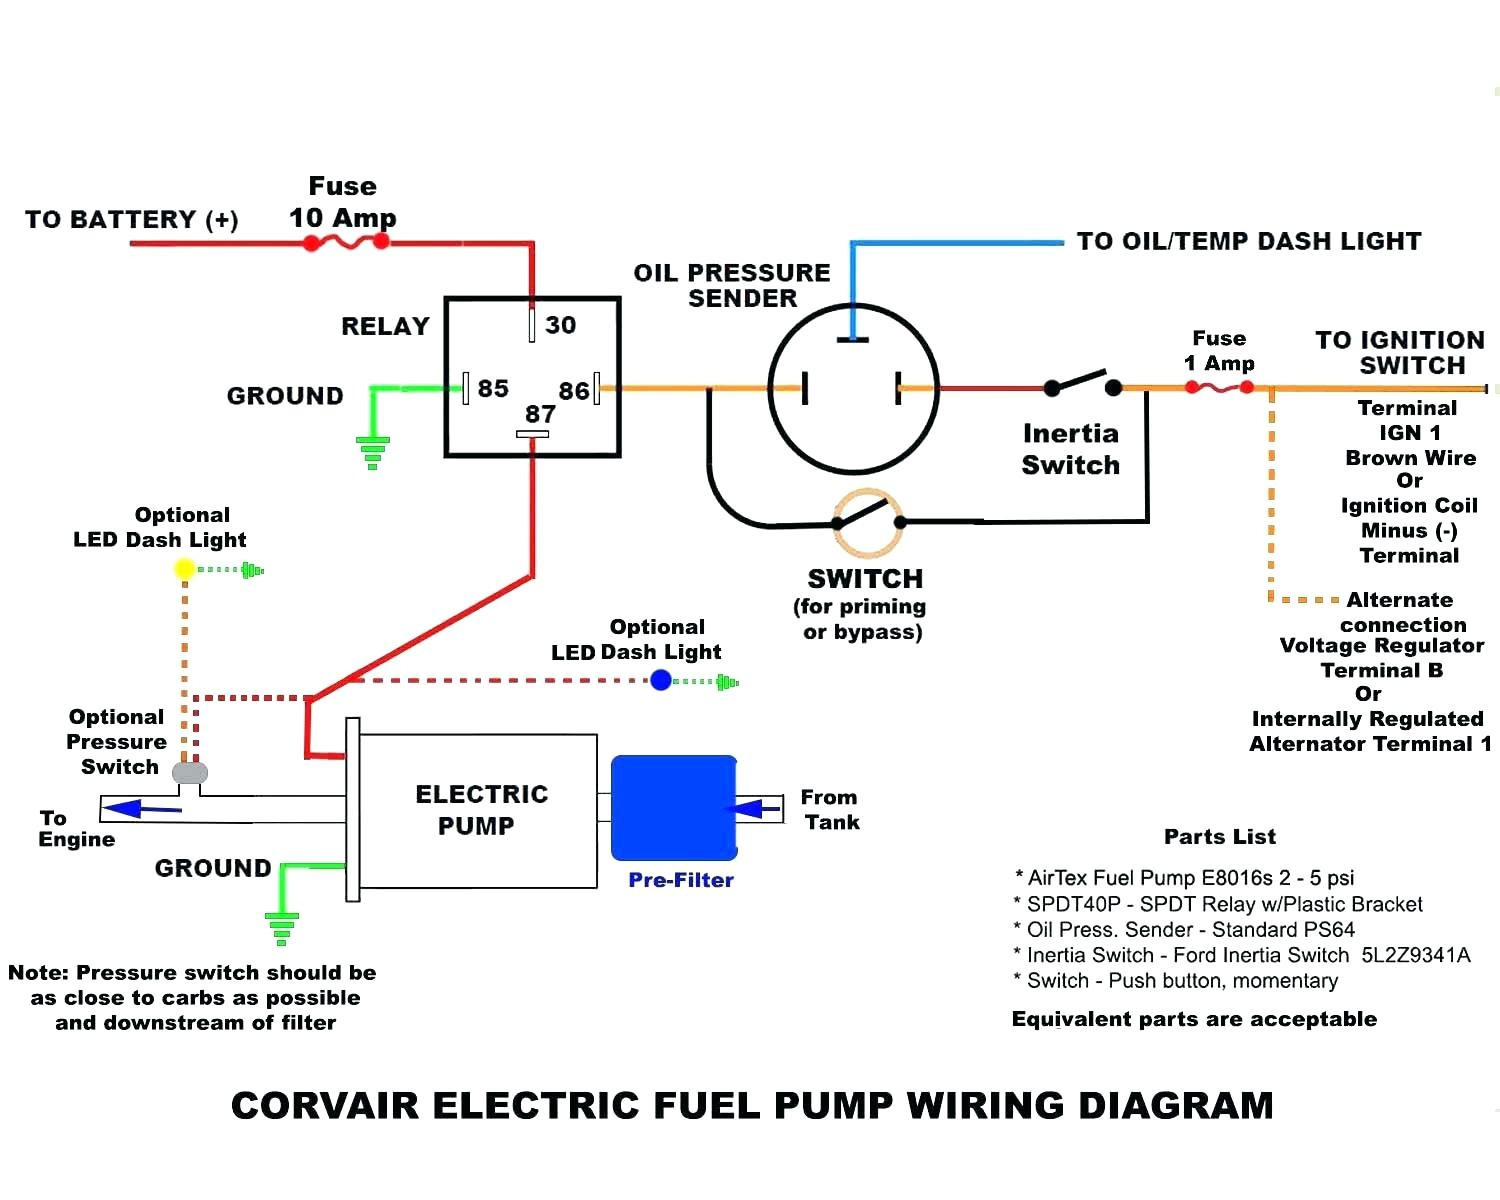 Electric Fuel Pump Wiring Diagram Wiring Diagram Image 240SX History 96 240sx  Fuse Diagram